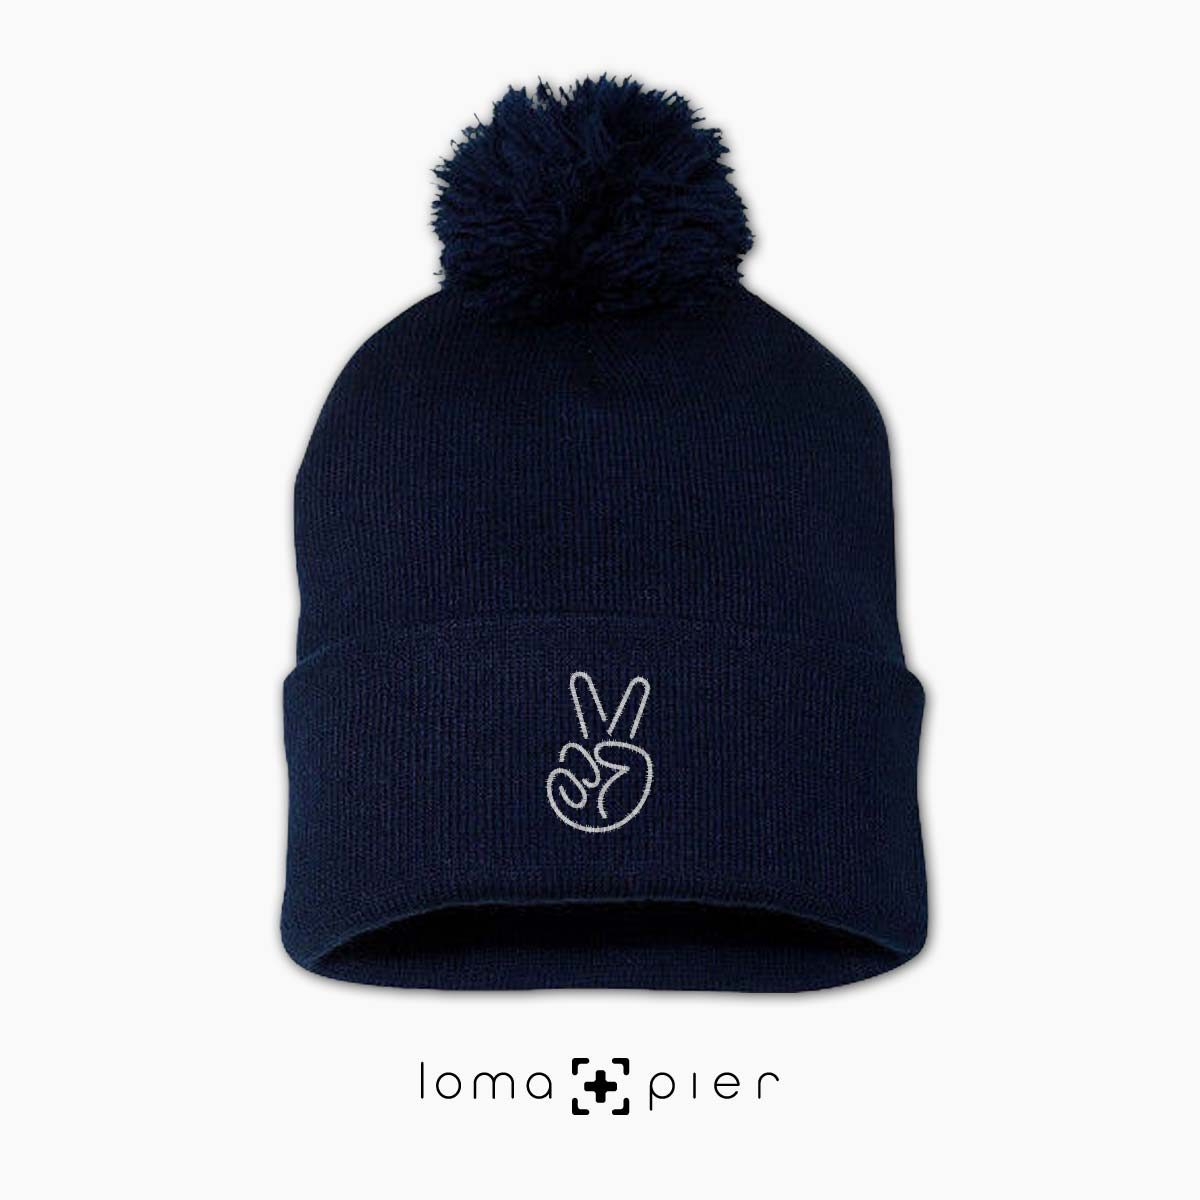 PEACE SIGN HAND icon embroidered on a navy blue pom pom beanie with white thread by loma+pier hat store